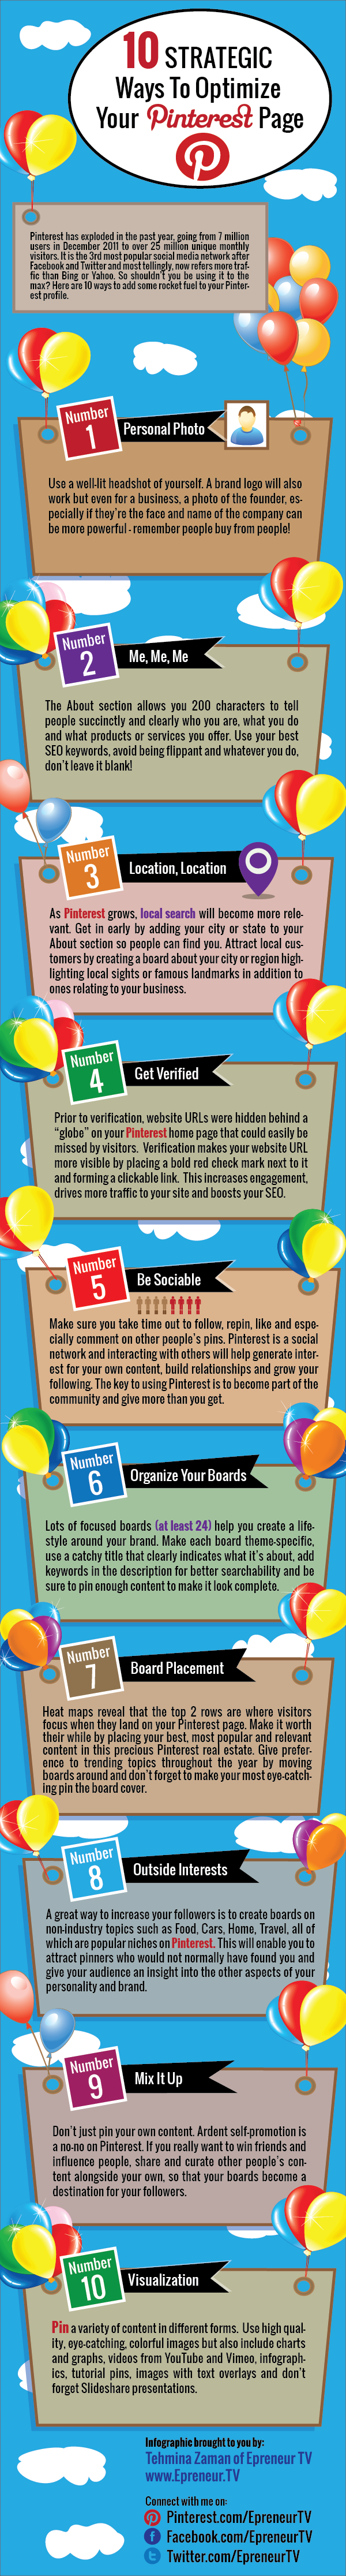 10 Ways to Optimize Your Pinterest Page resized 600